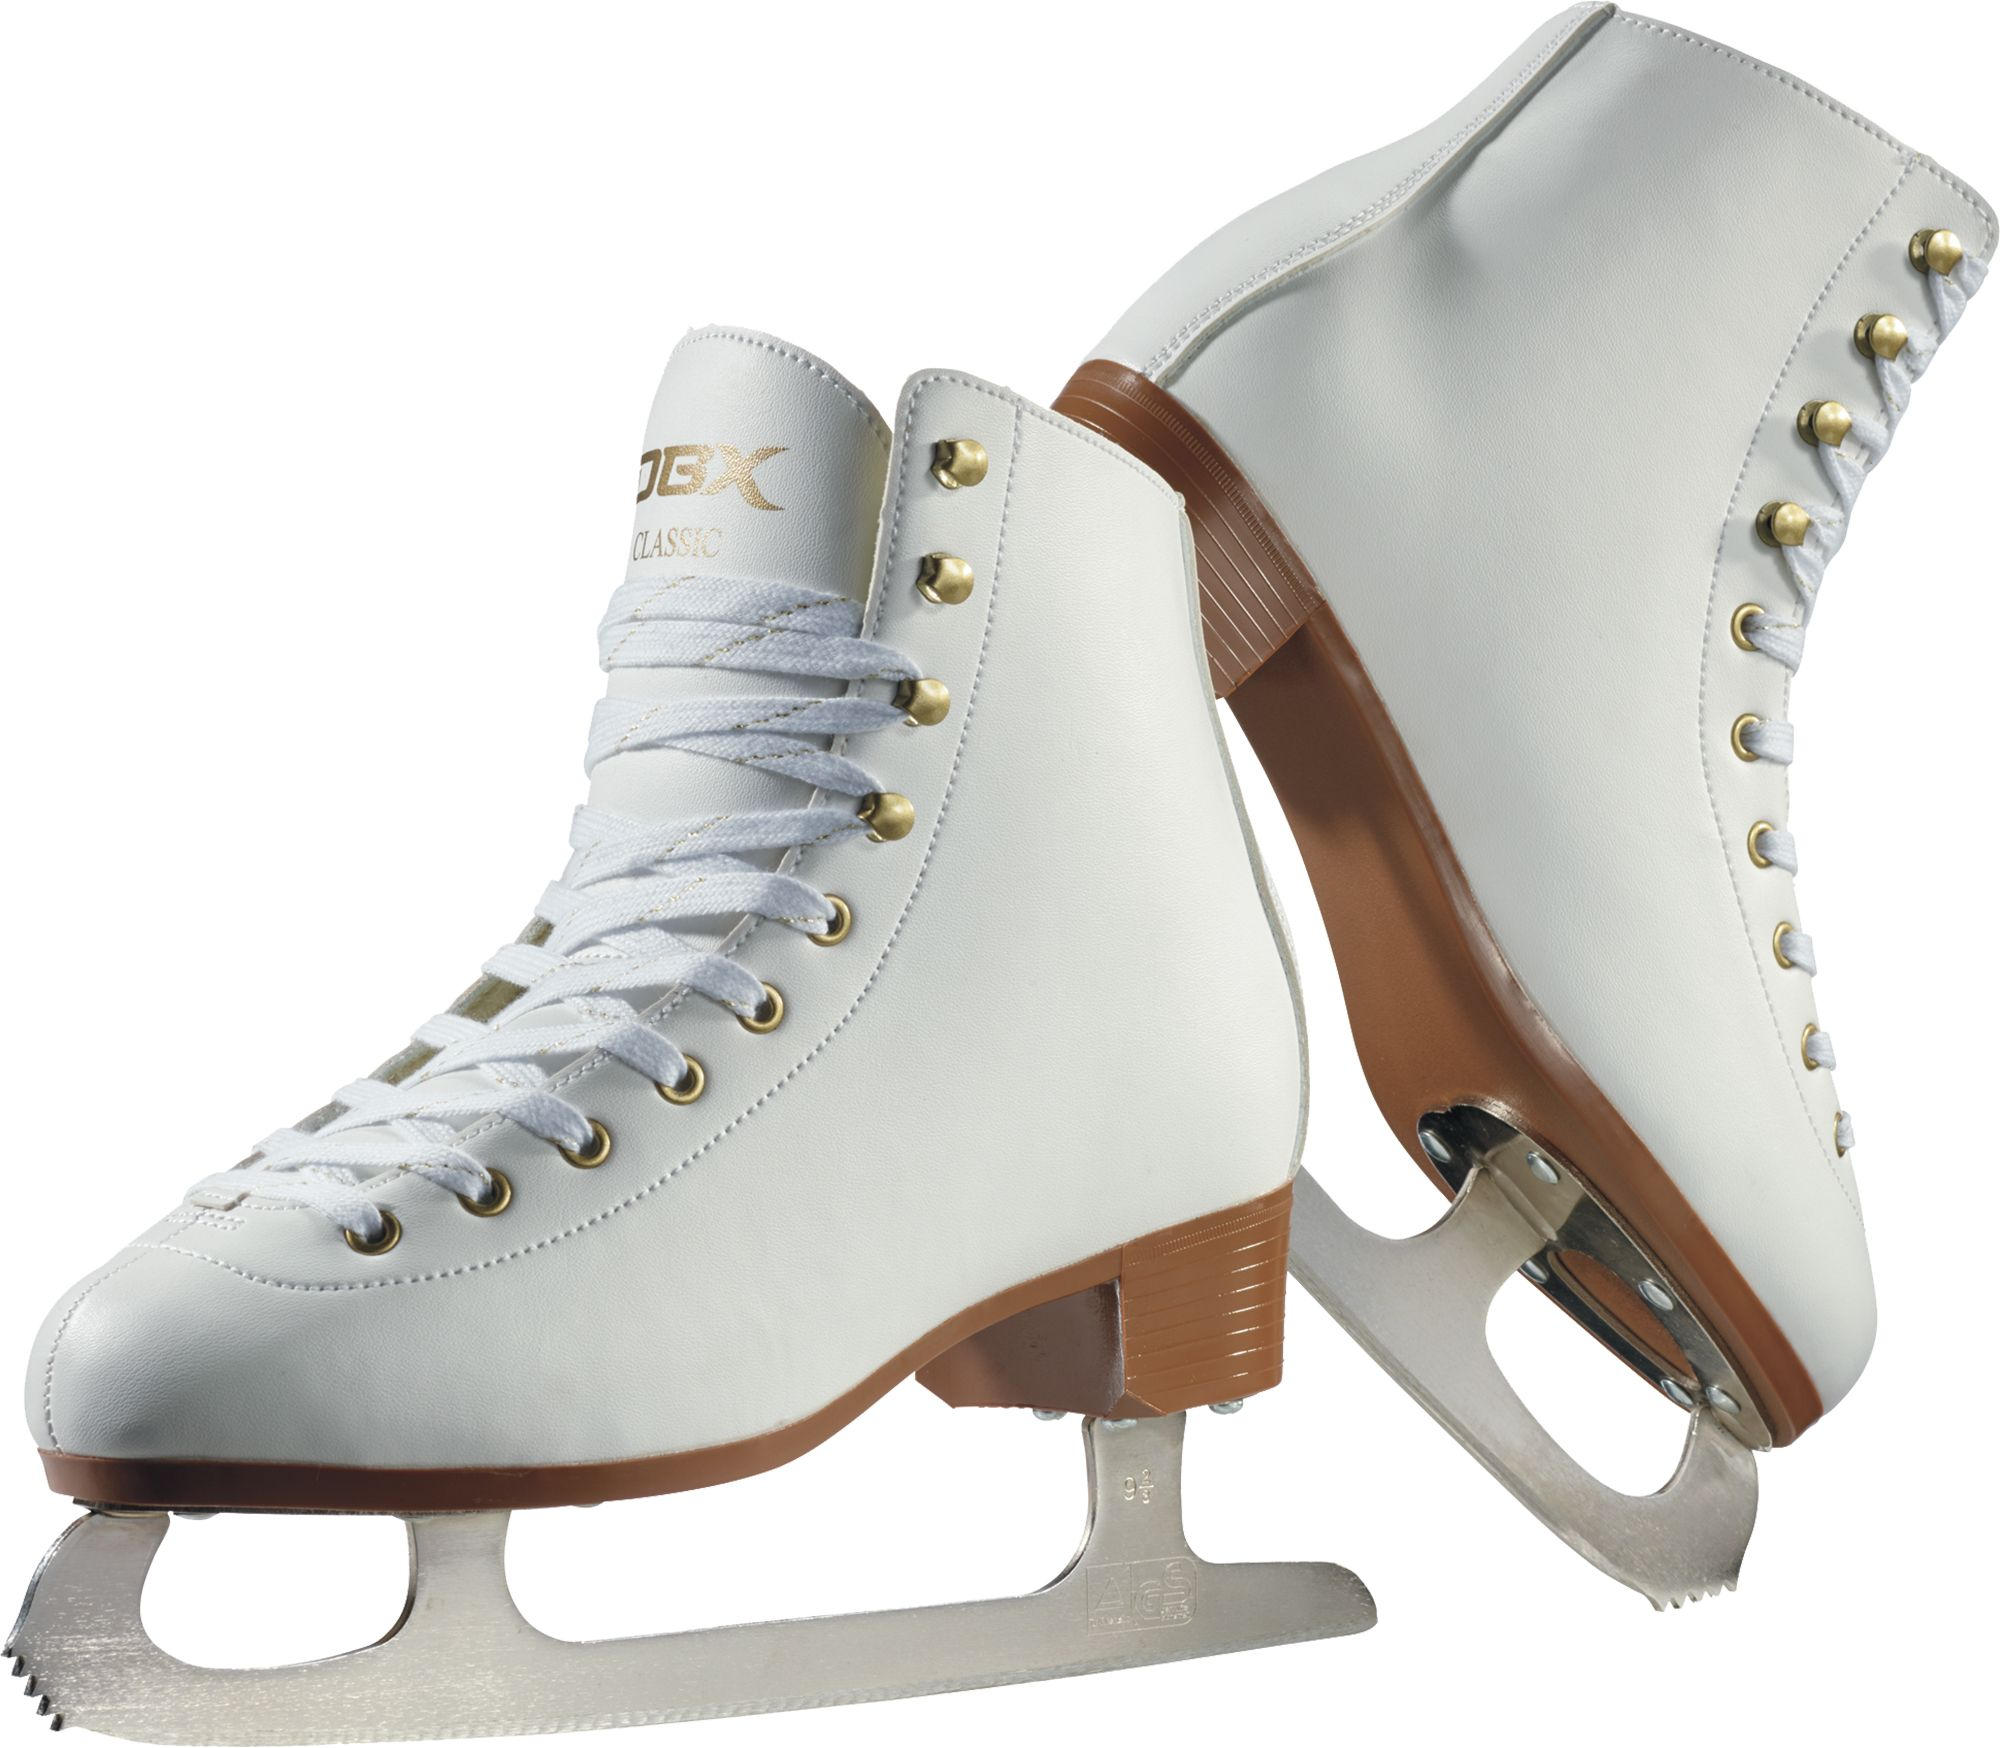 American Athletic Shoe Girls Leather Lined Figure Skates White